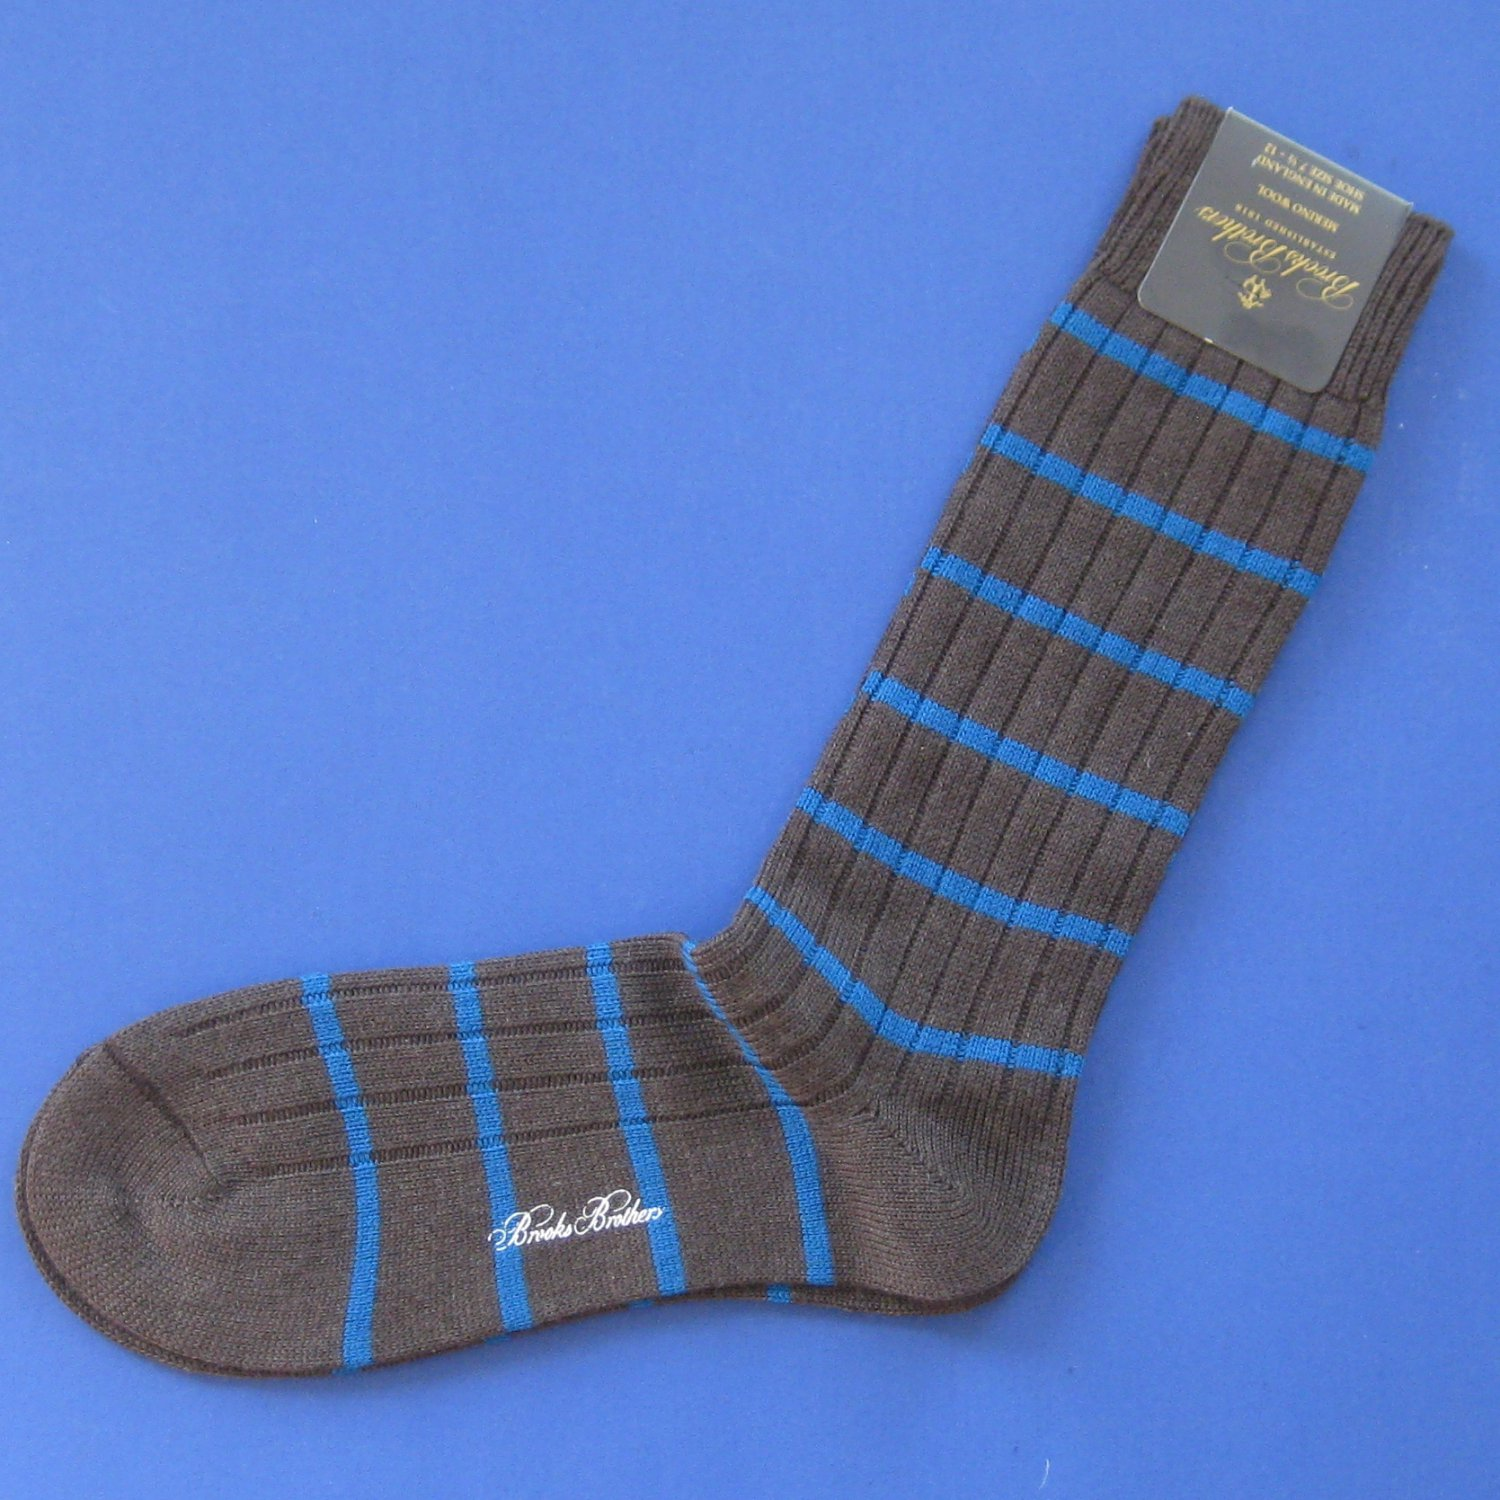 NWT Brooks Brothers Brown w/Blue Merino Wool Striped Knit Trouser Dress Socks